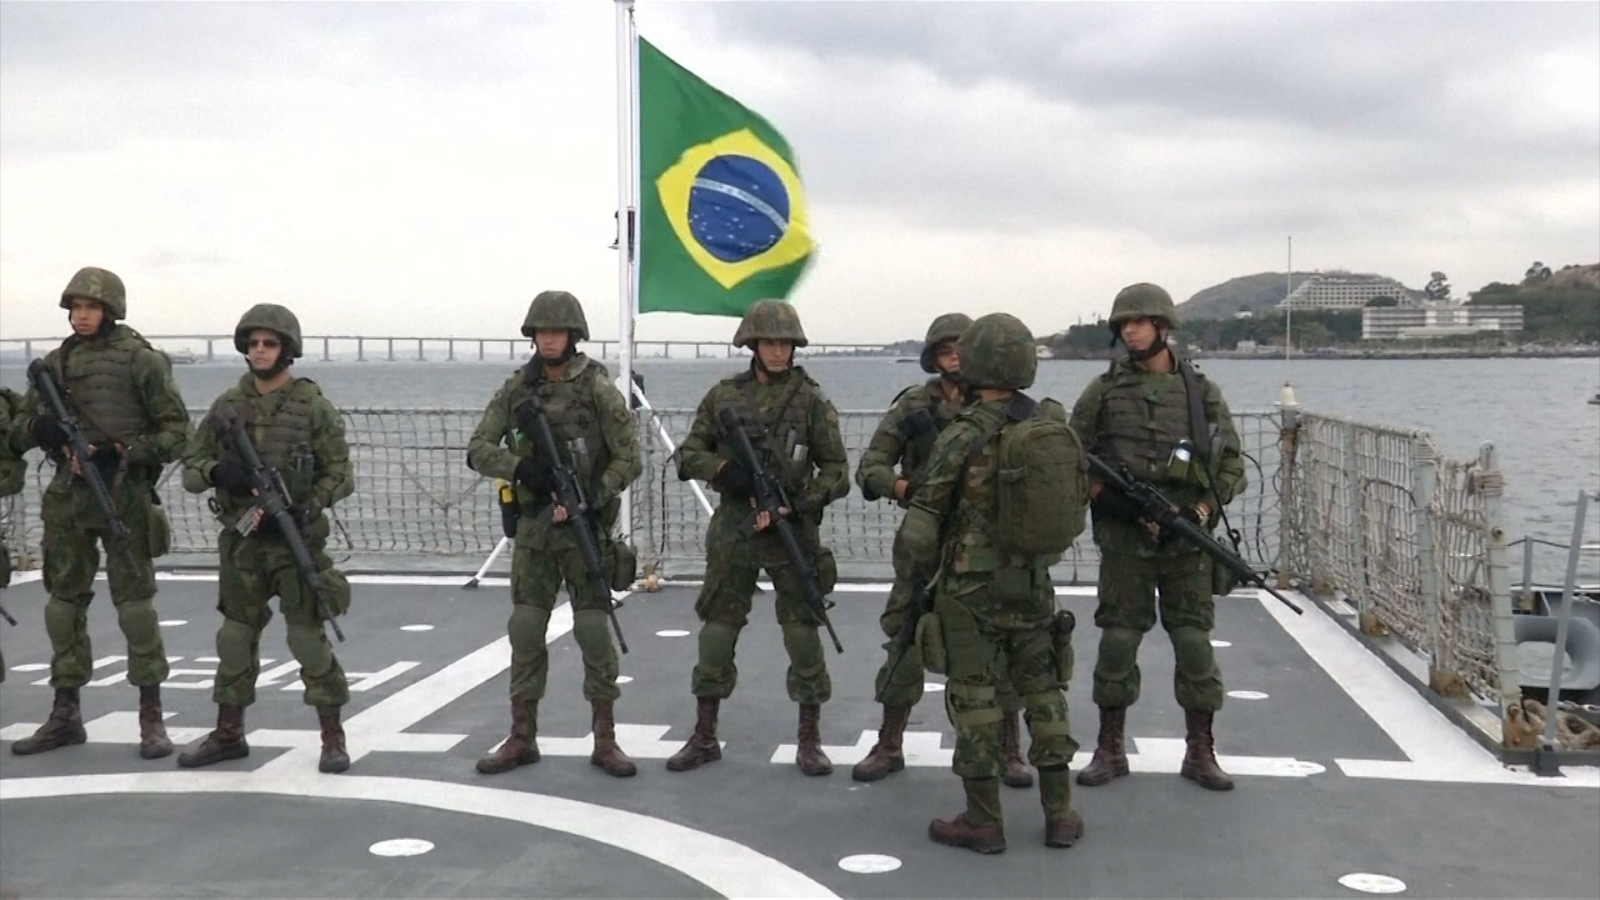 Rio Soldiers